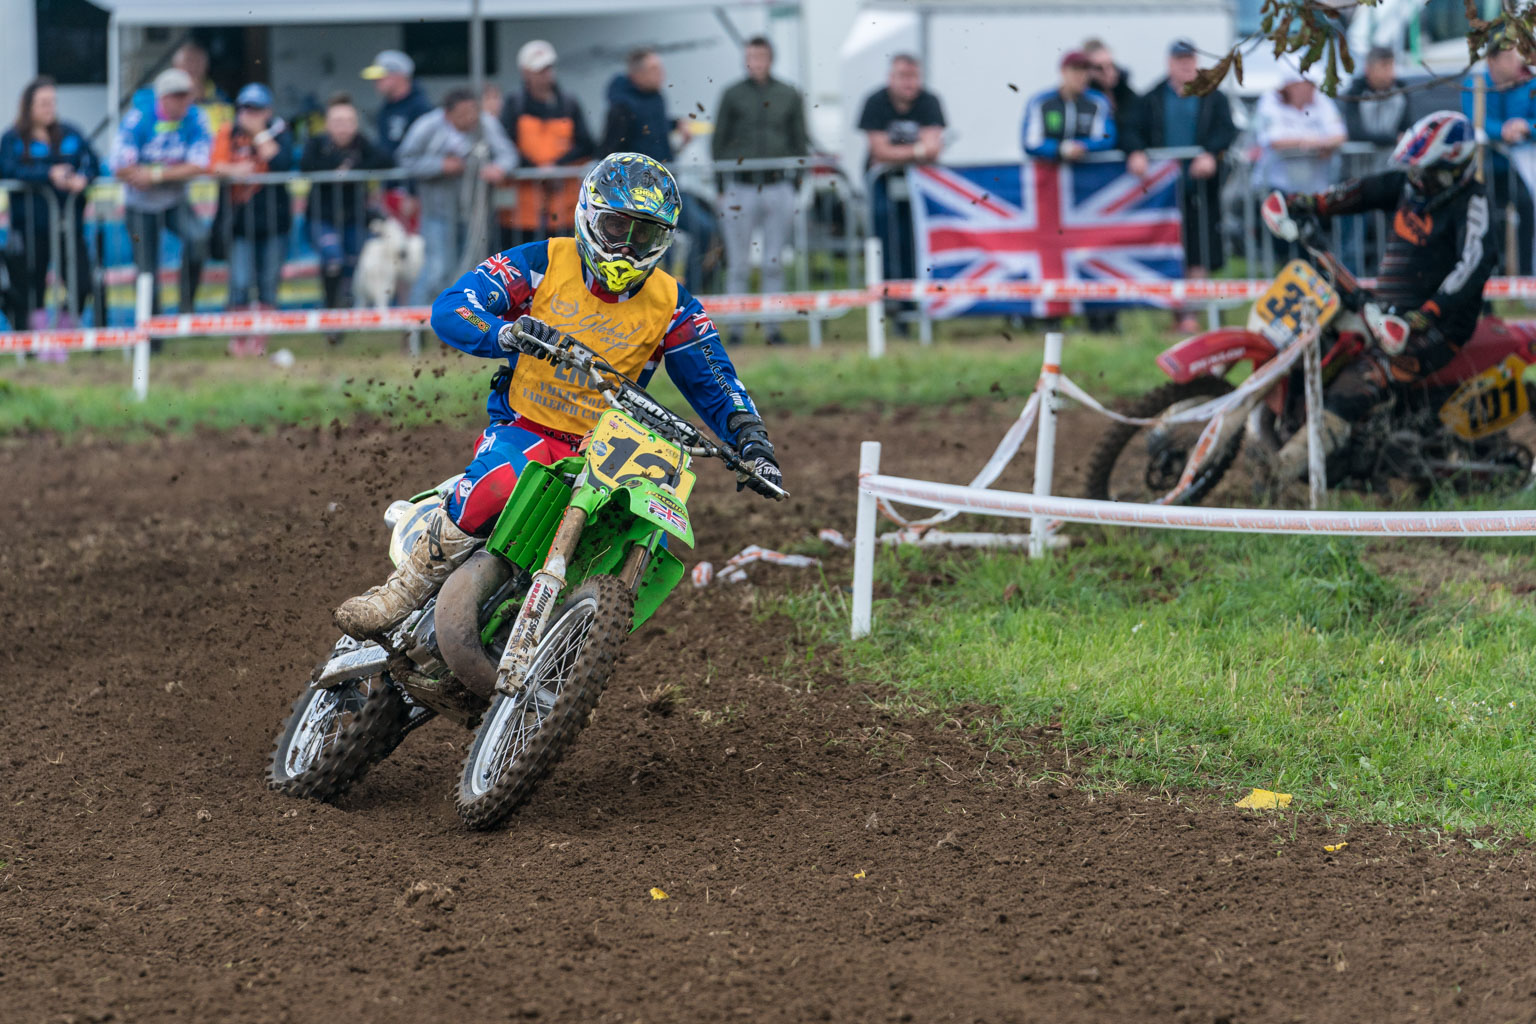 Tom Church was out on a KX500